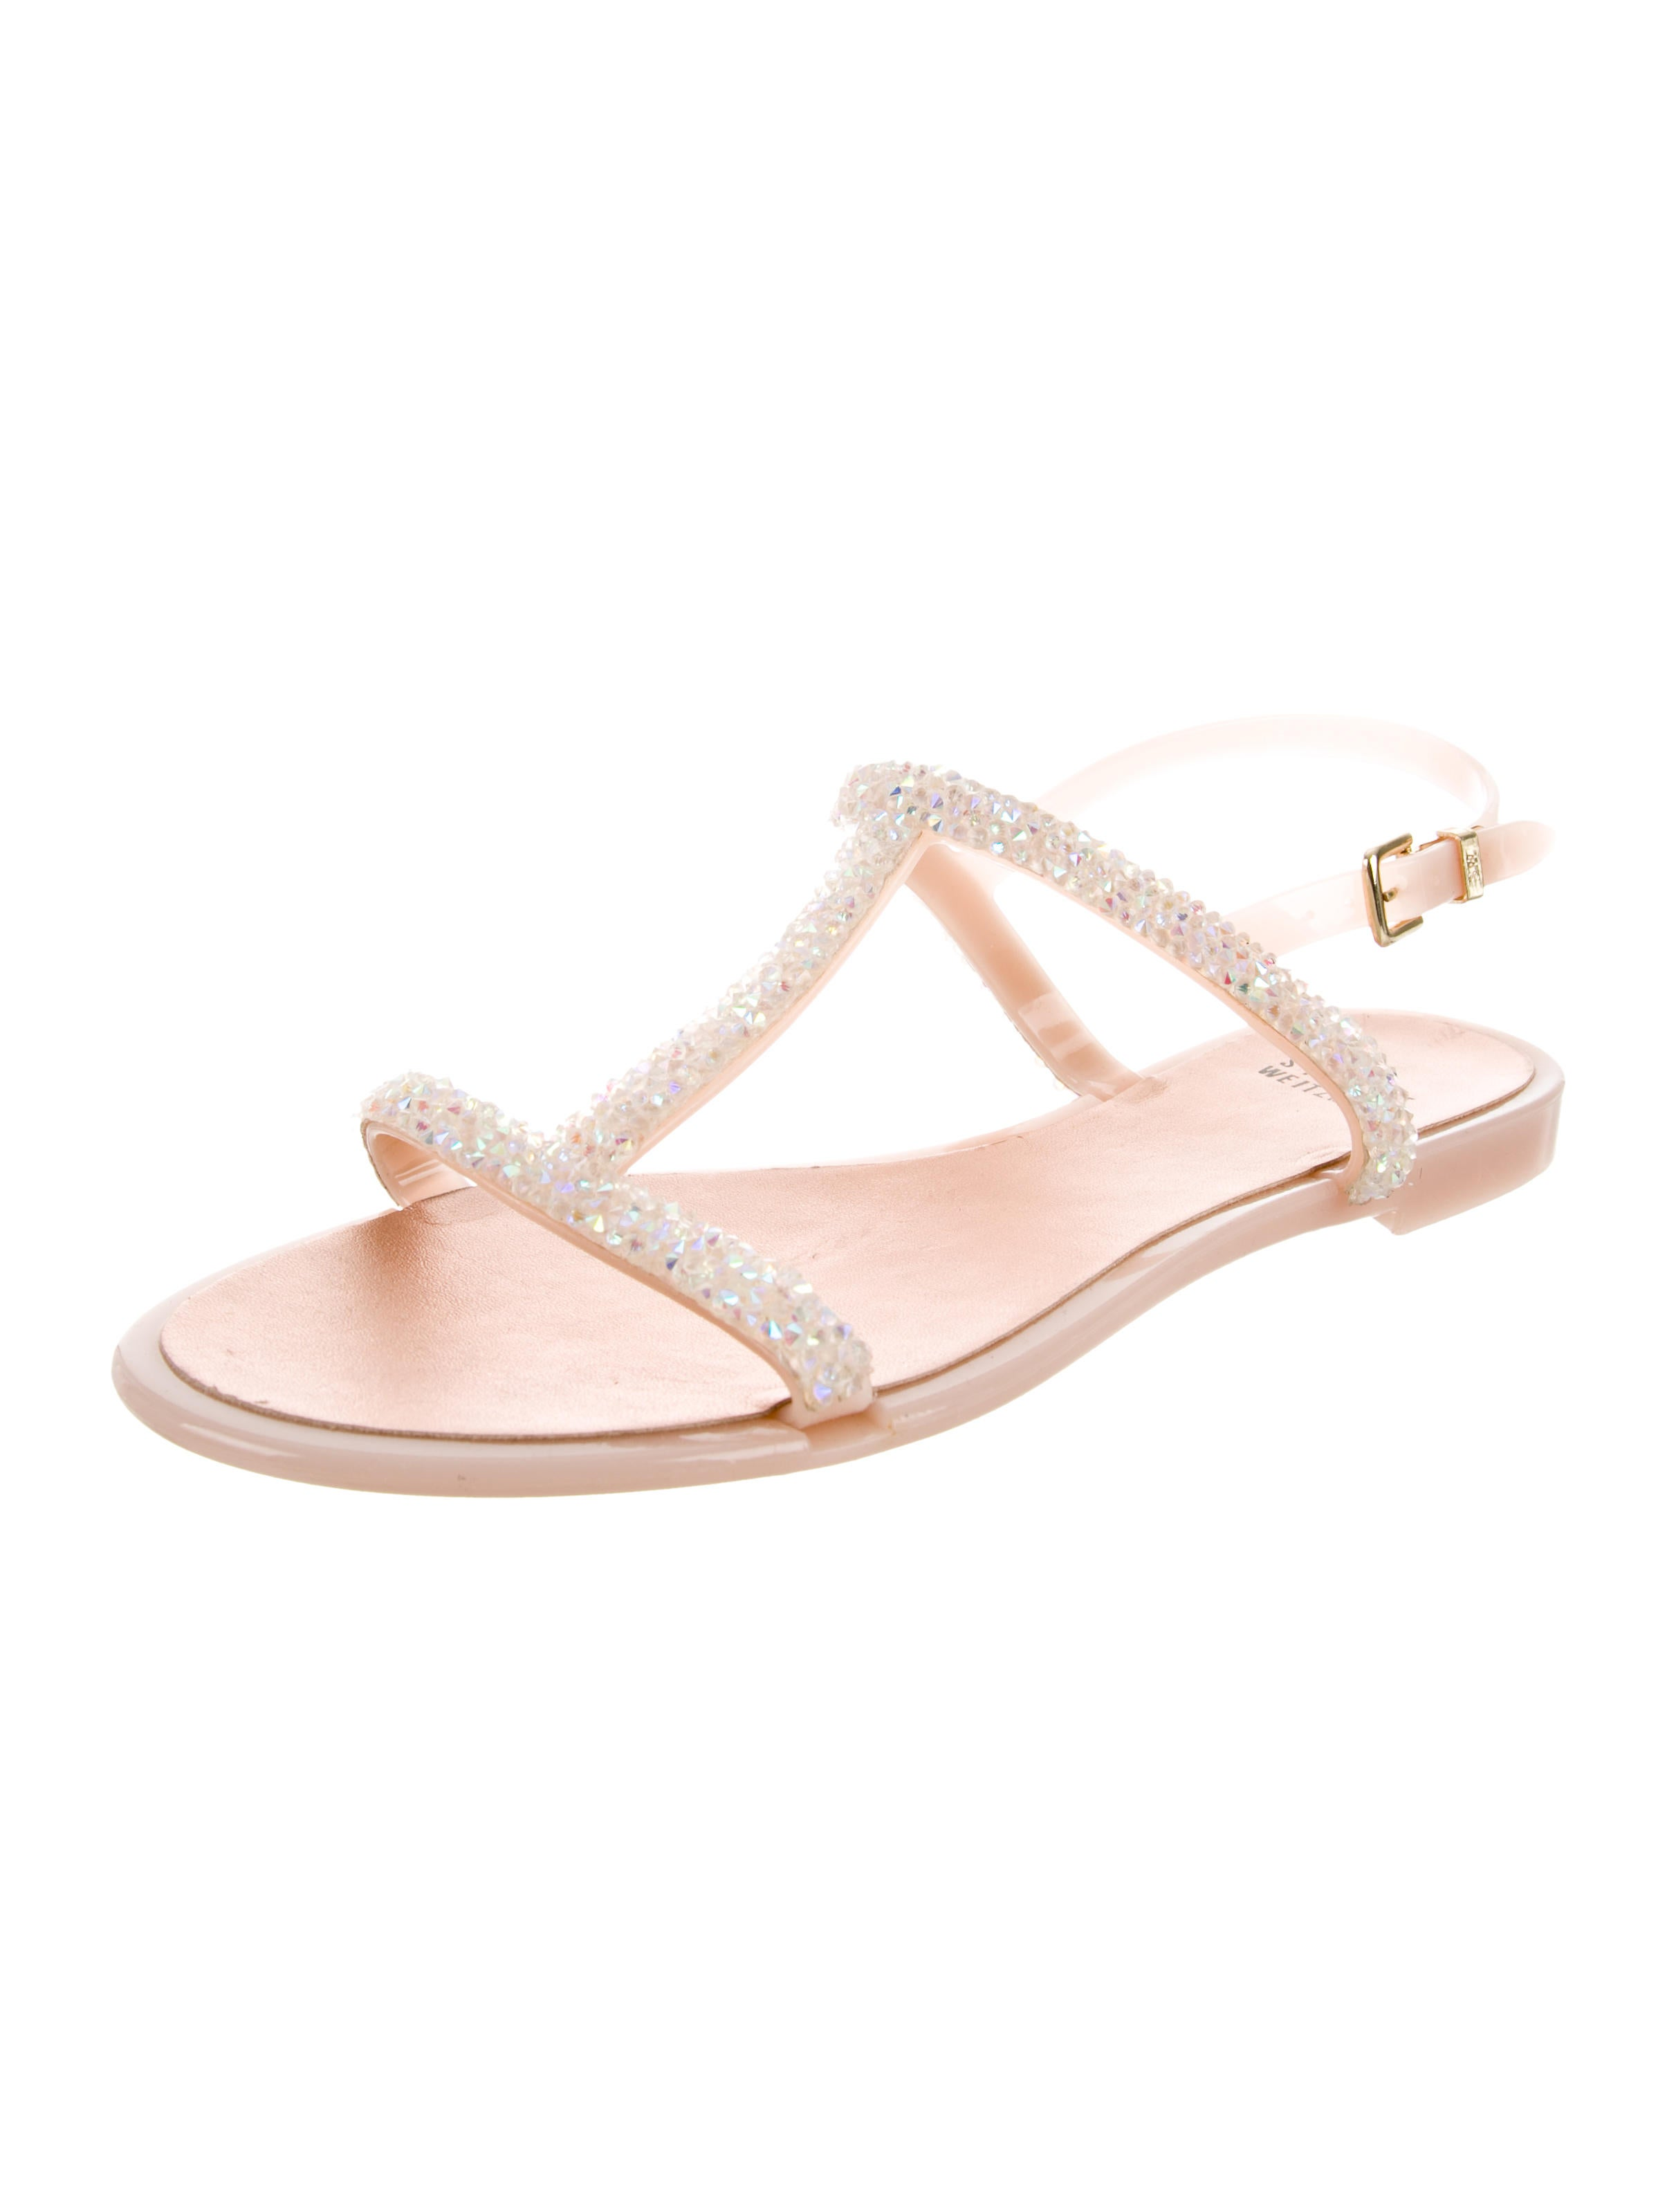 Stuart Weitzman Jewel-Embellished T-Strap Sandals buy cheap find great yiJhCJ